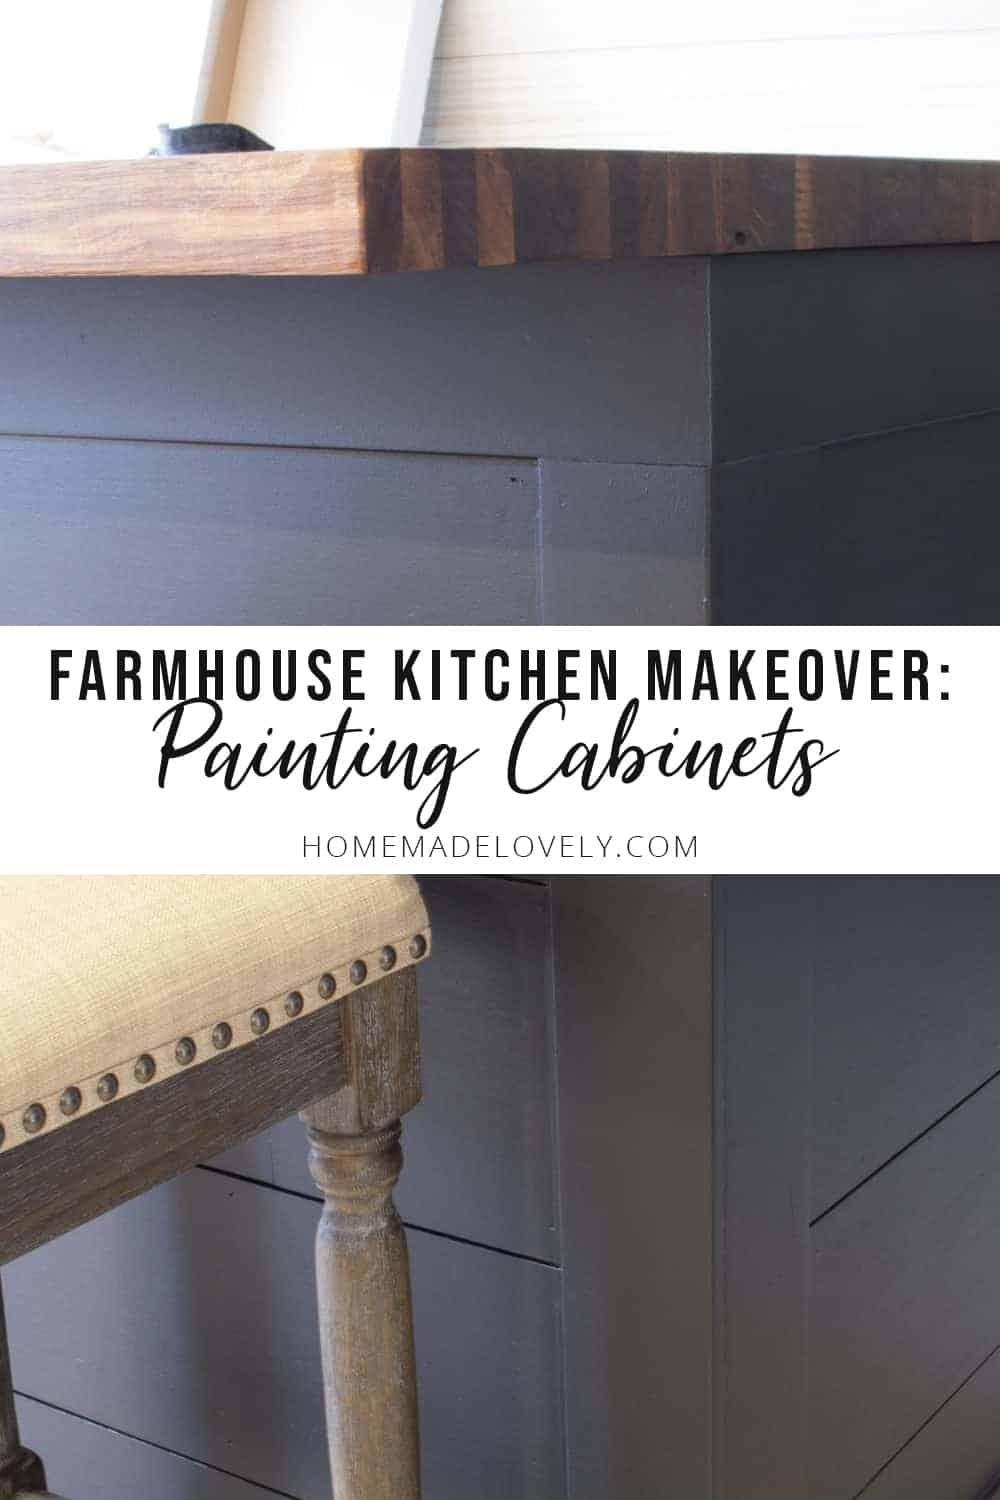 OUR MODERN FARMHOUSE KITCHEN MAKEOVER | Painting the Old Cabinets